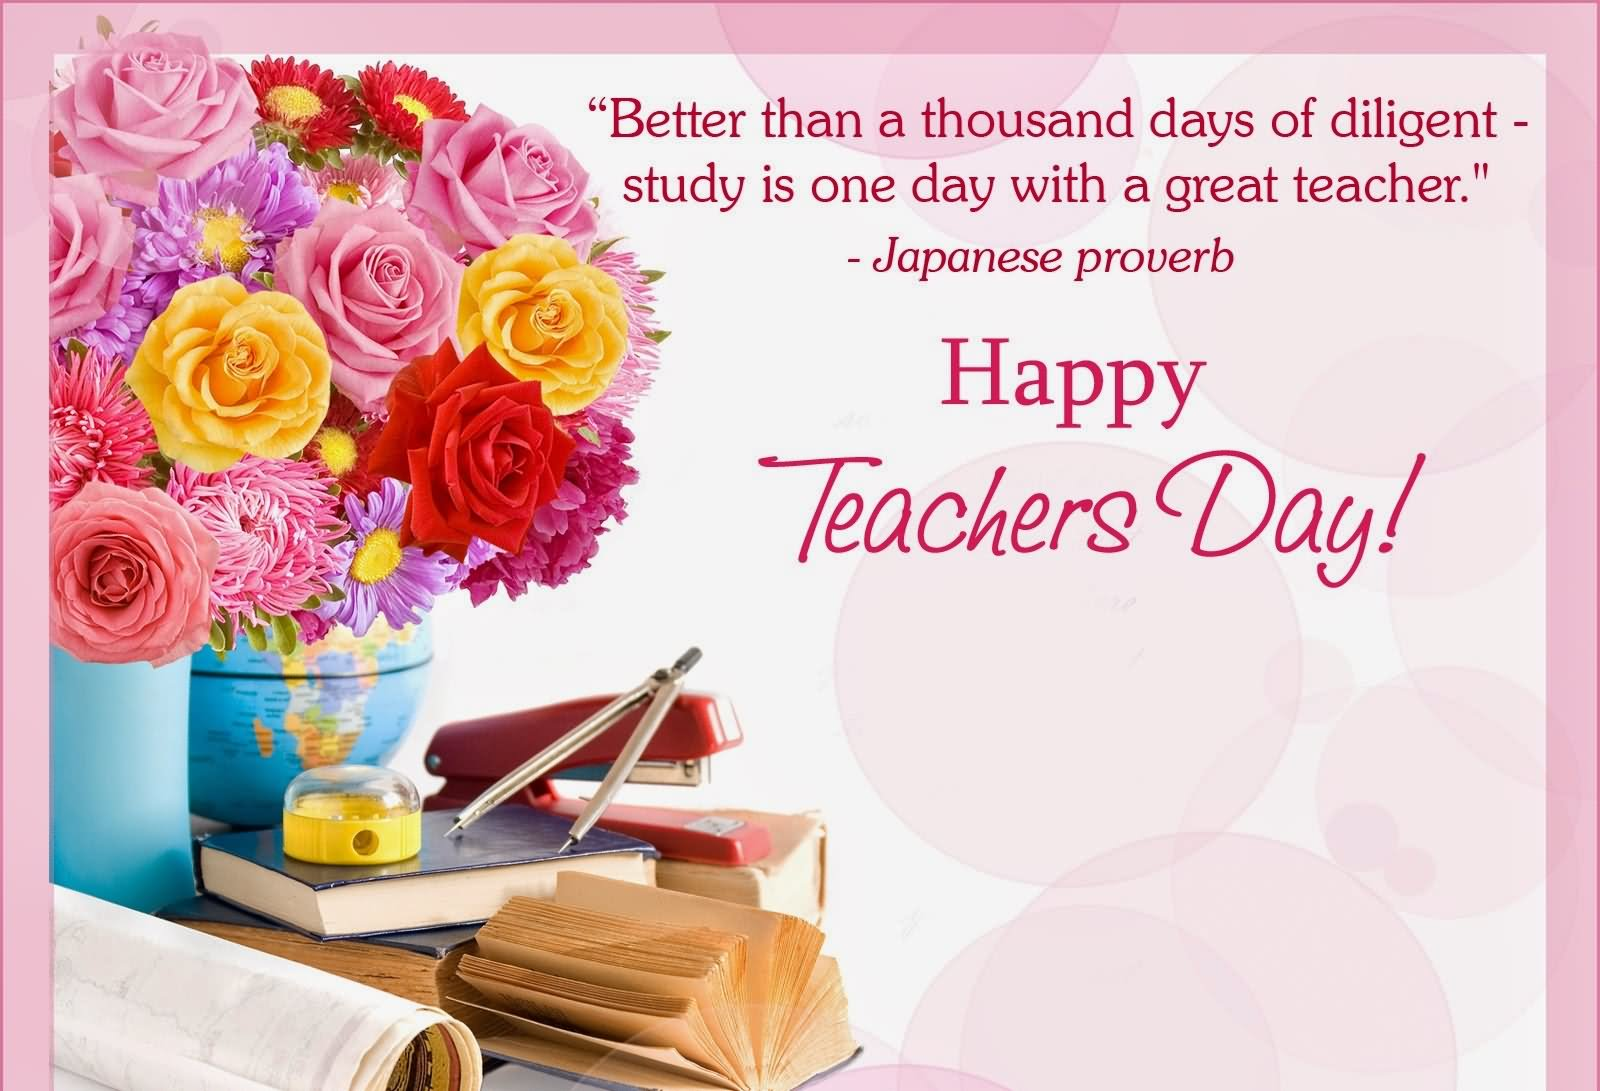 50 beautiful teachers day greeting card pictures and images better than a thousand days of diligent study is one day with a great teacher happy kristyandbryce Image collections